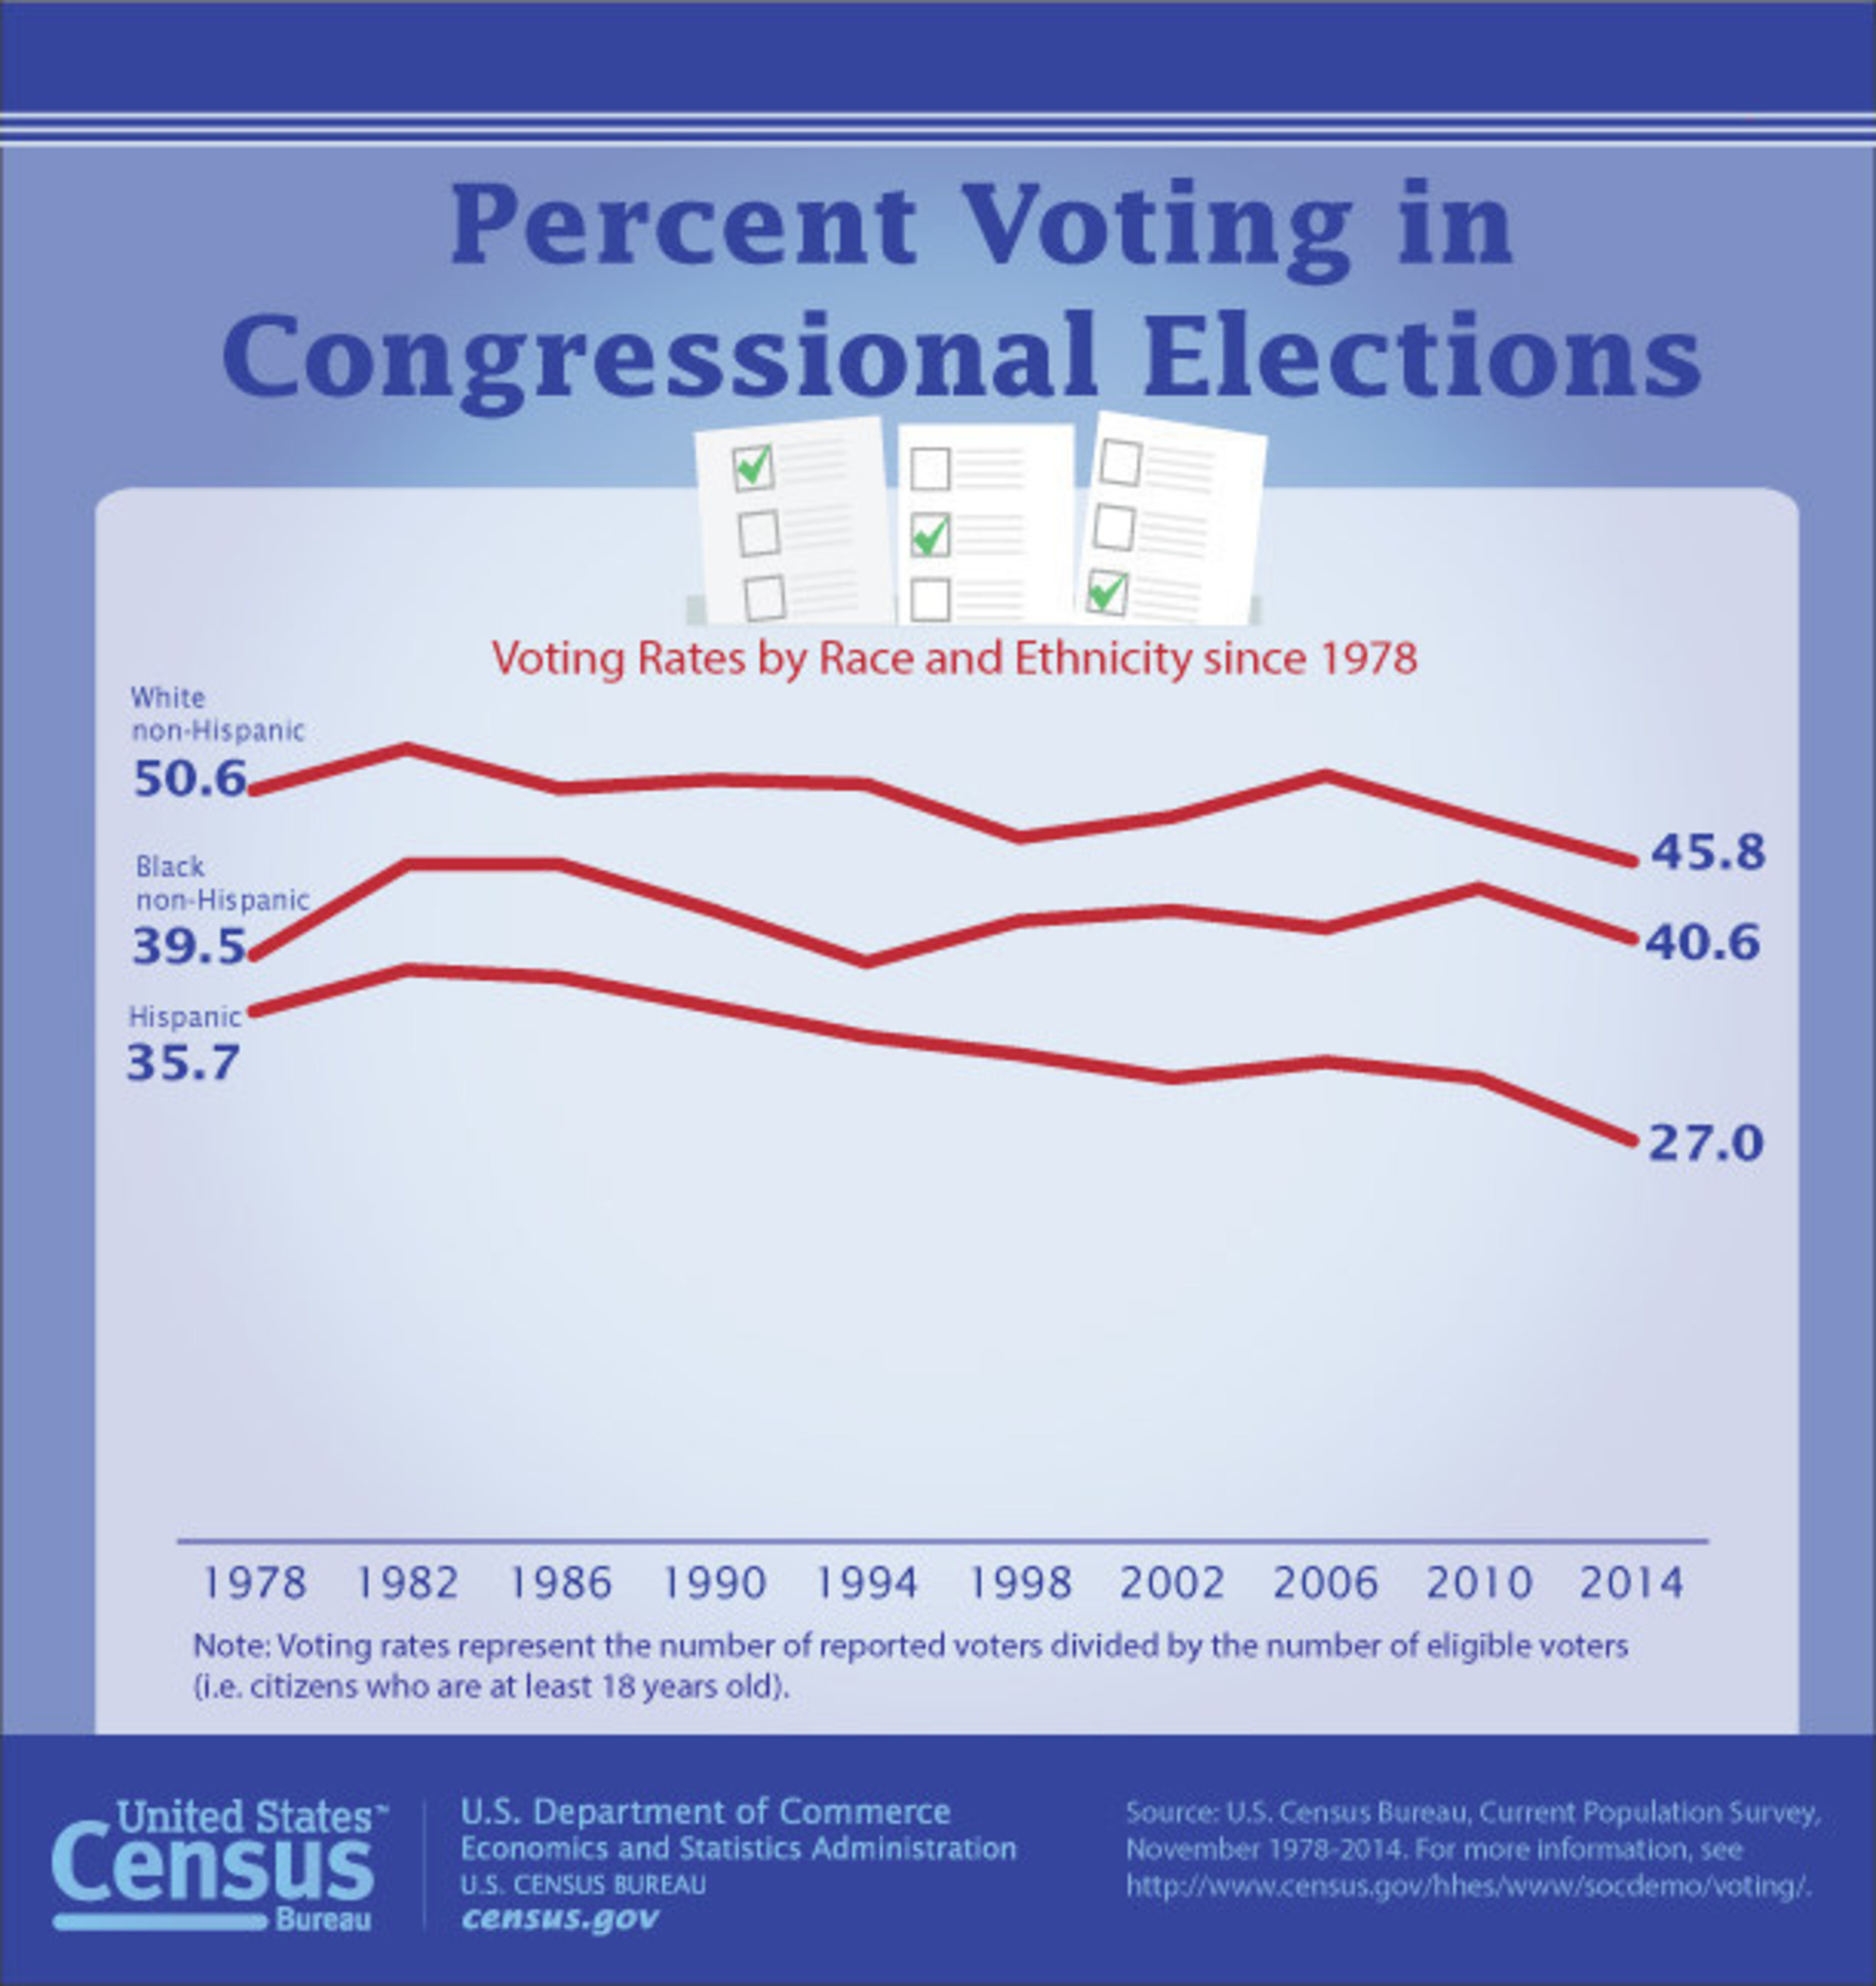 According to the U.S. Census Bureau, in the 2014 congressional election all races and ethnicities saw a decline in voting rates.